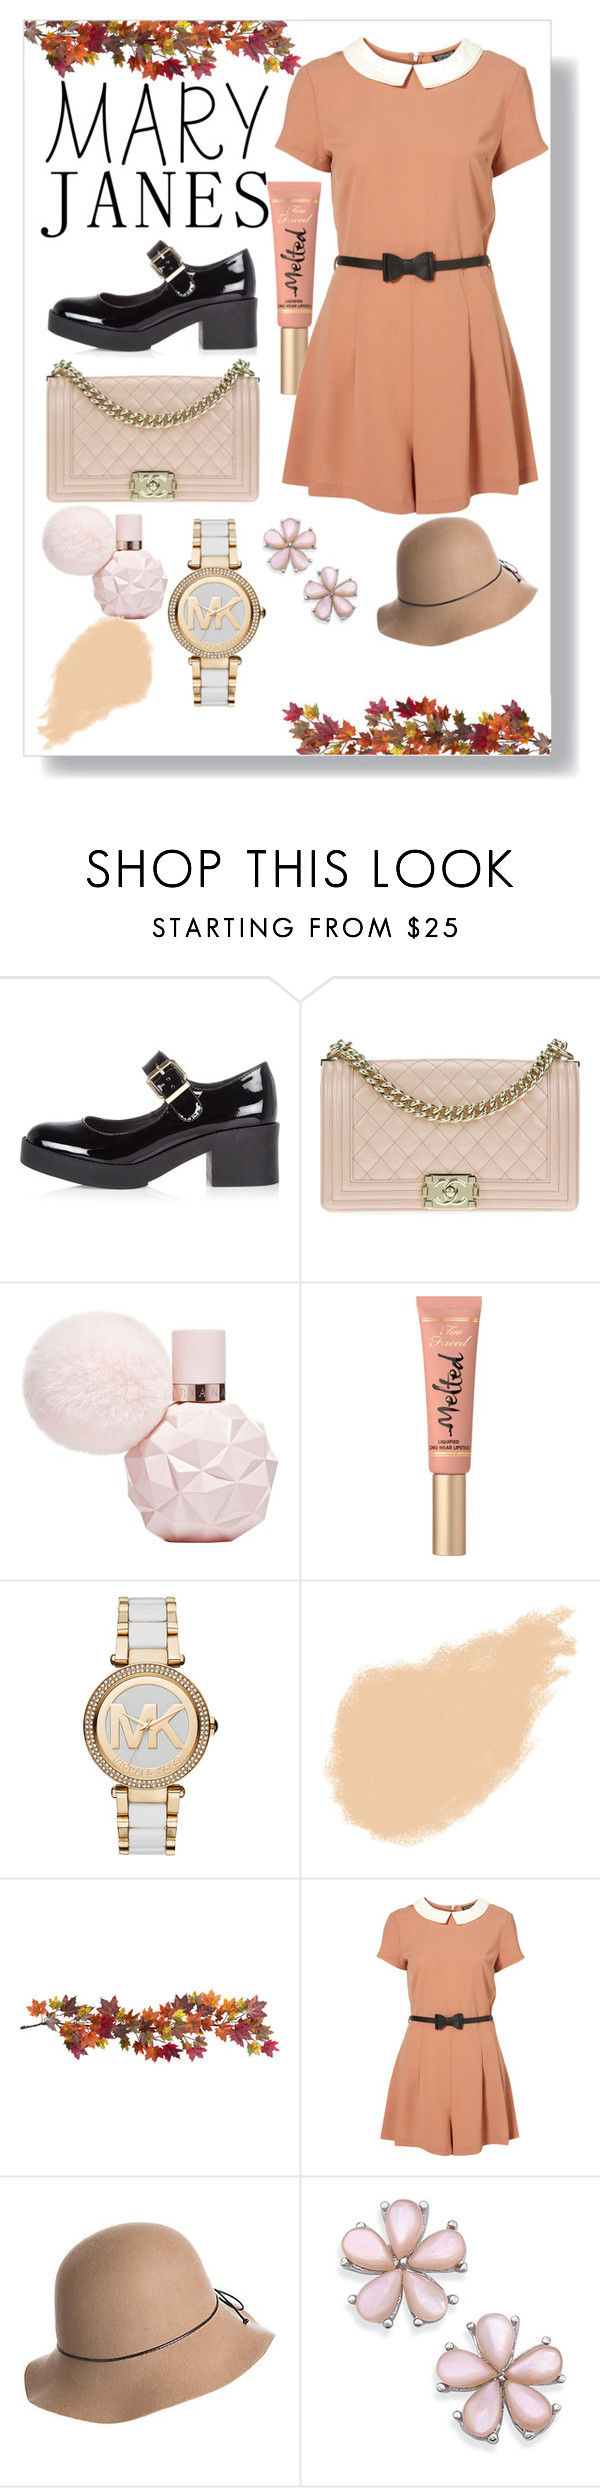 """""""Hello September"""" by yixingunicorn on Polyvore featuring moda, River Island, Chanel, Too Faced Cosmetics, Michael Kors, NARS Cosmetics, Nearly Natural ve Overland Sheepskin Co."""